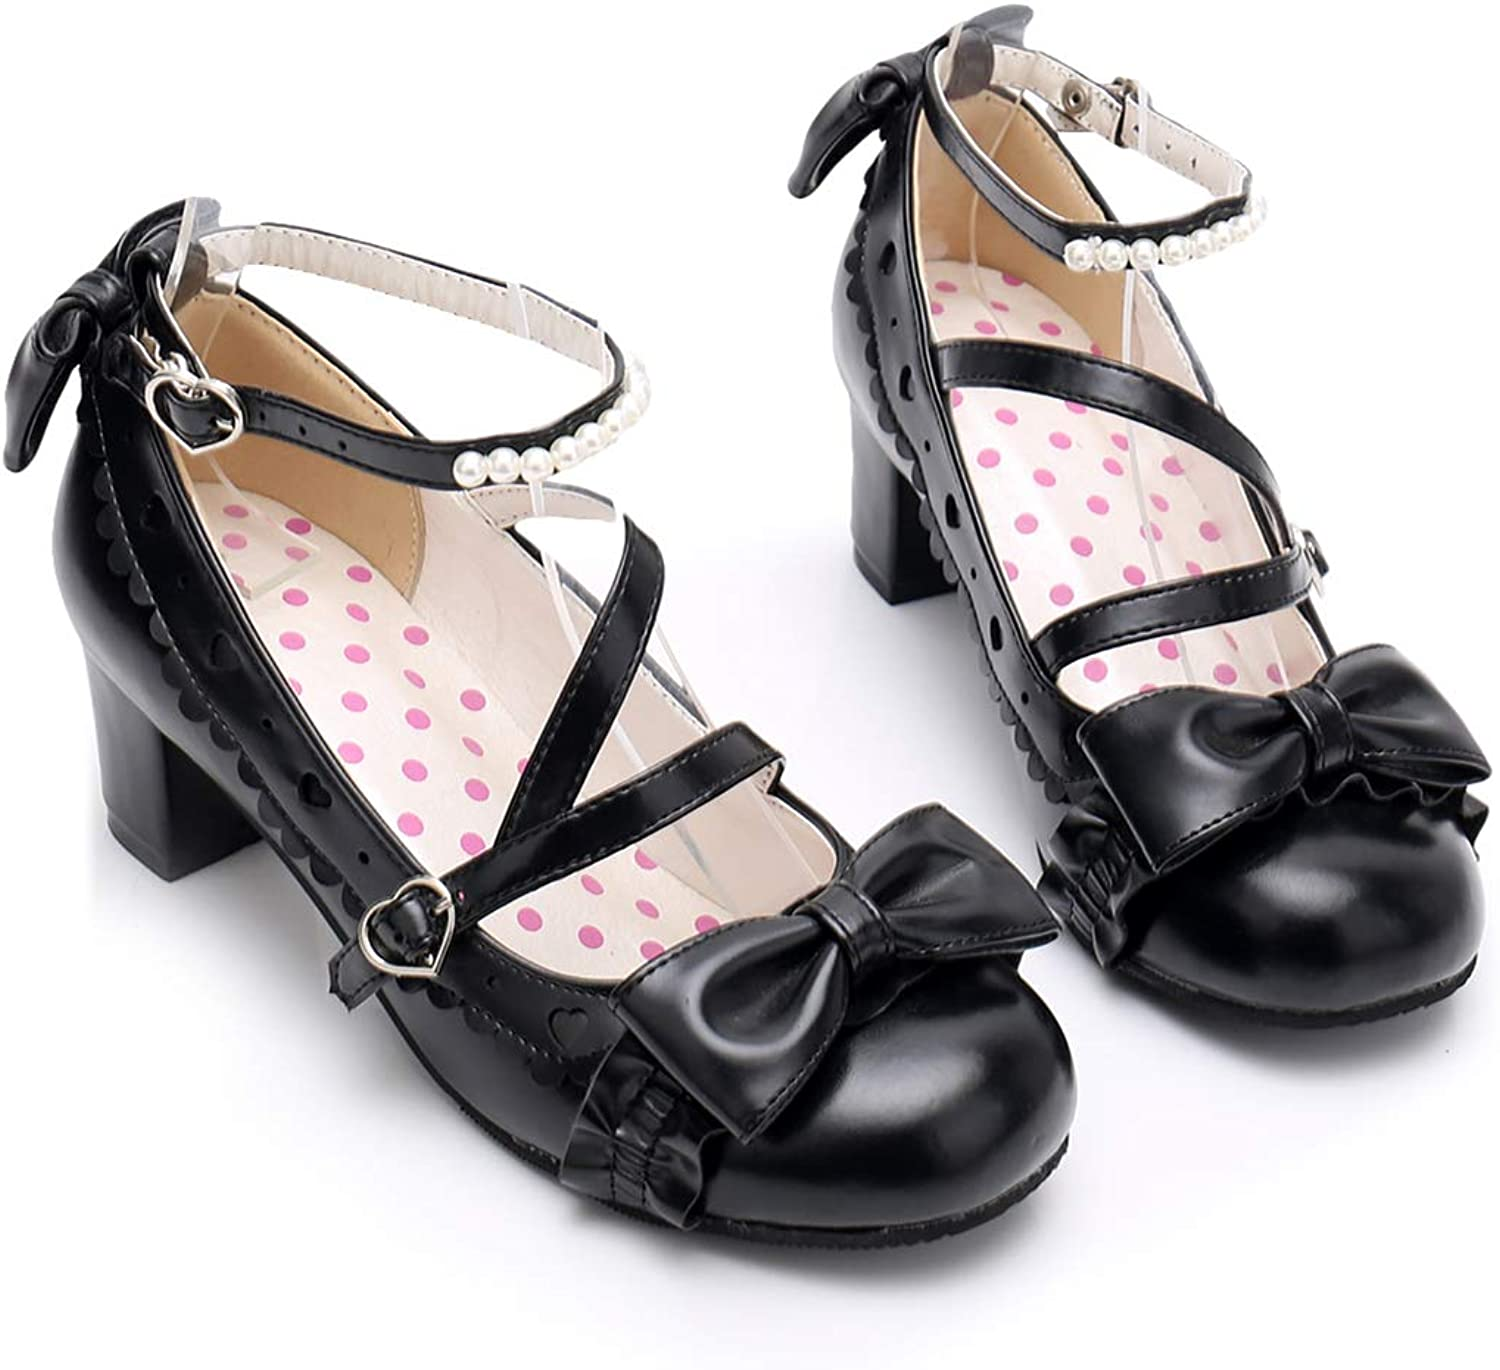 Women's Ankle Strap High Heel Pumps Sweet Lolita Princess Party Dress shoes